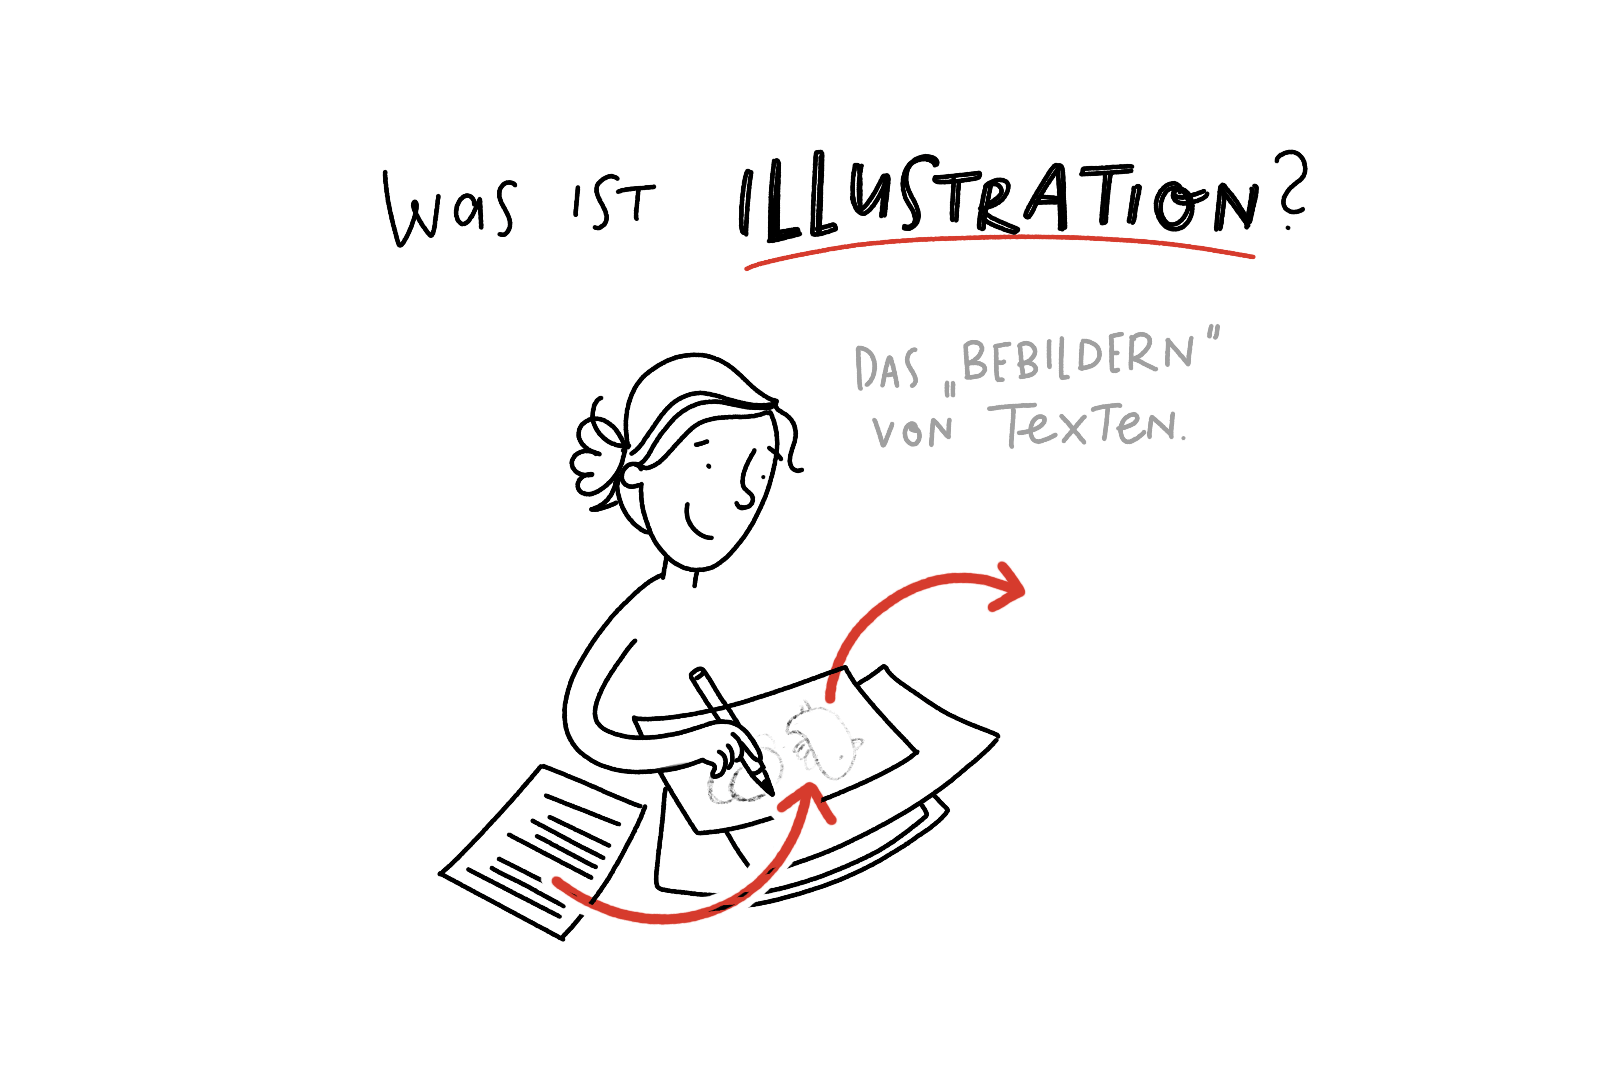 Sketchnotes – Was ist Illustration